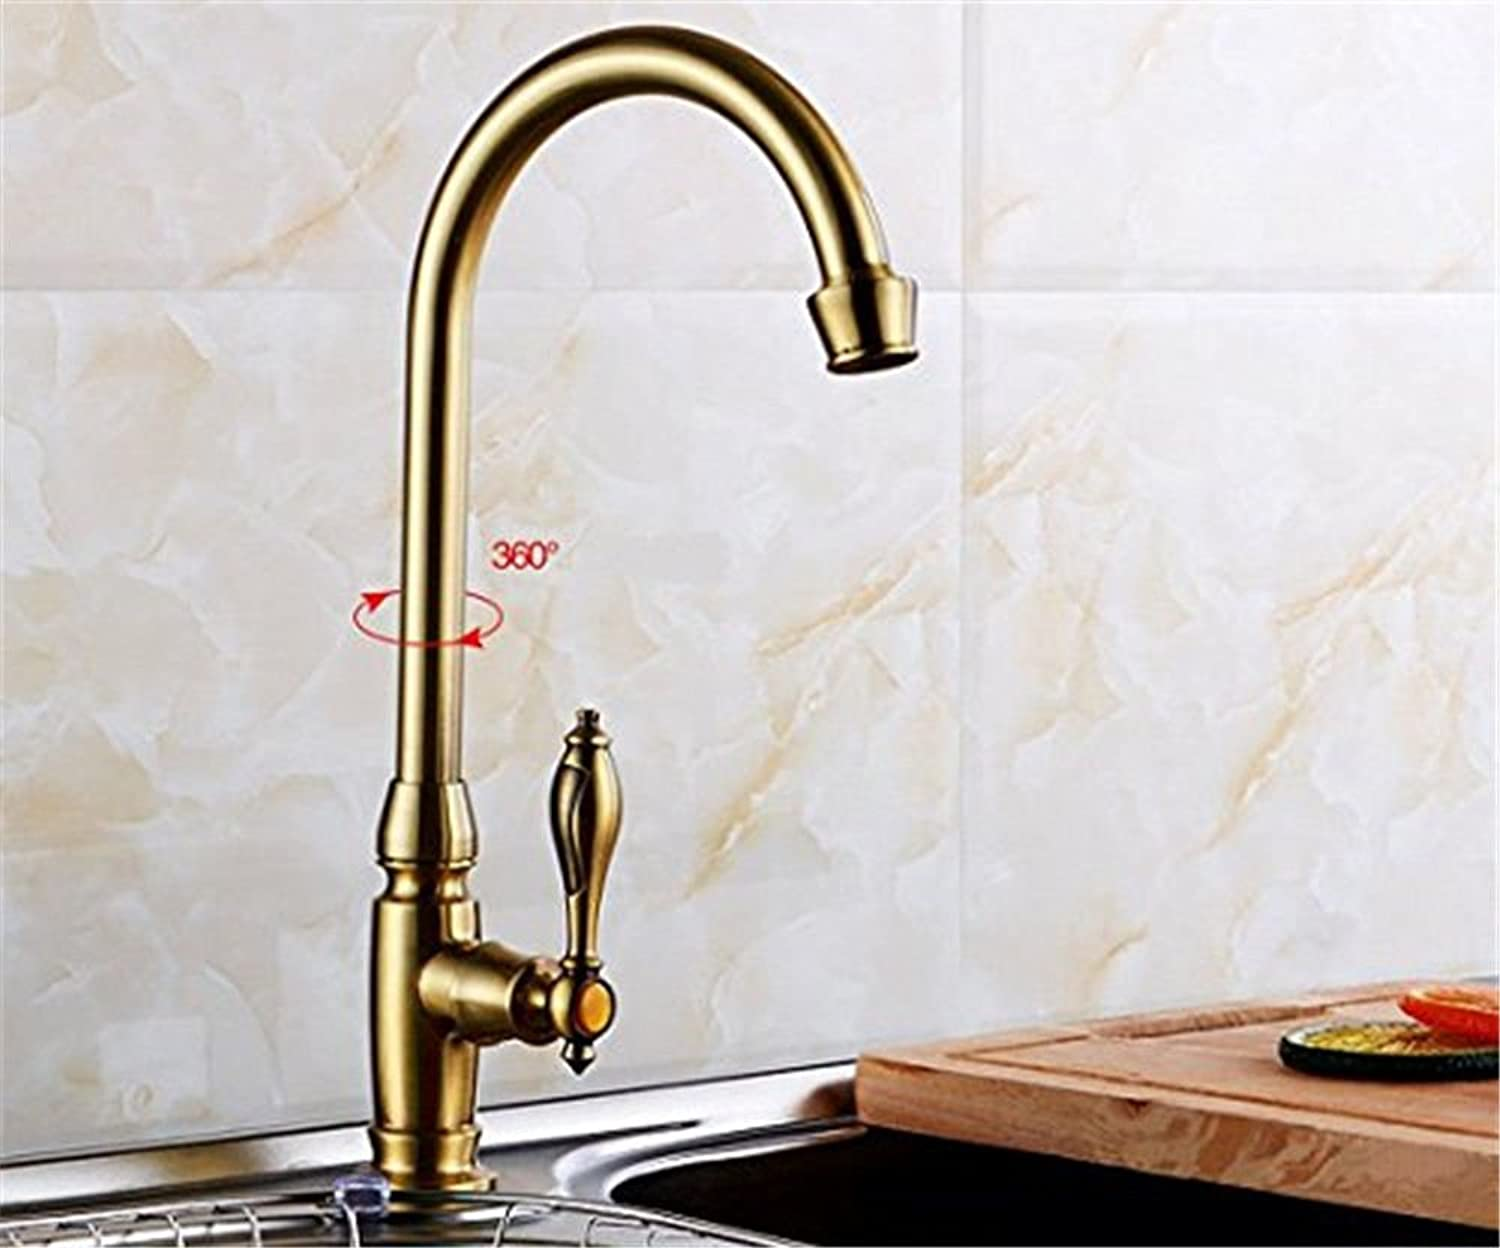 Bijjaladeva Antique Kitchen Sink Mixer Tap The Kitchen Sink Kitchen Basin Faucet Basin Sink Swivel Single Hole Single Cold-Water-Tower high-Angled 360° Swivel tap Water n